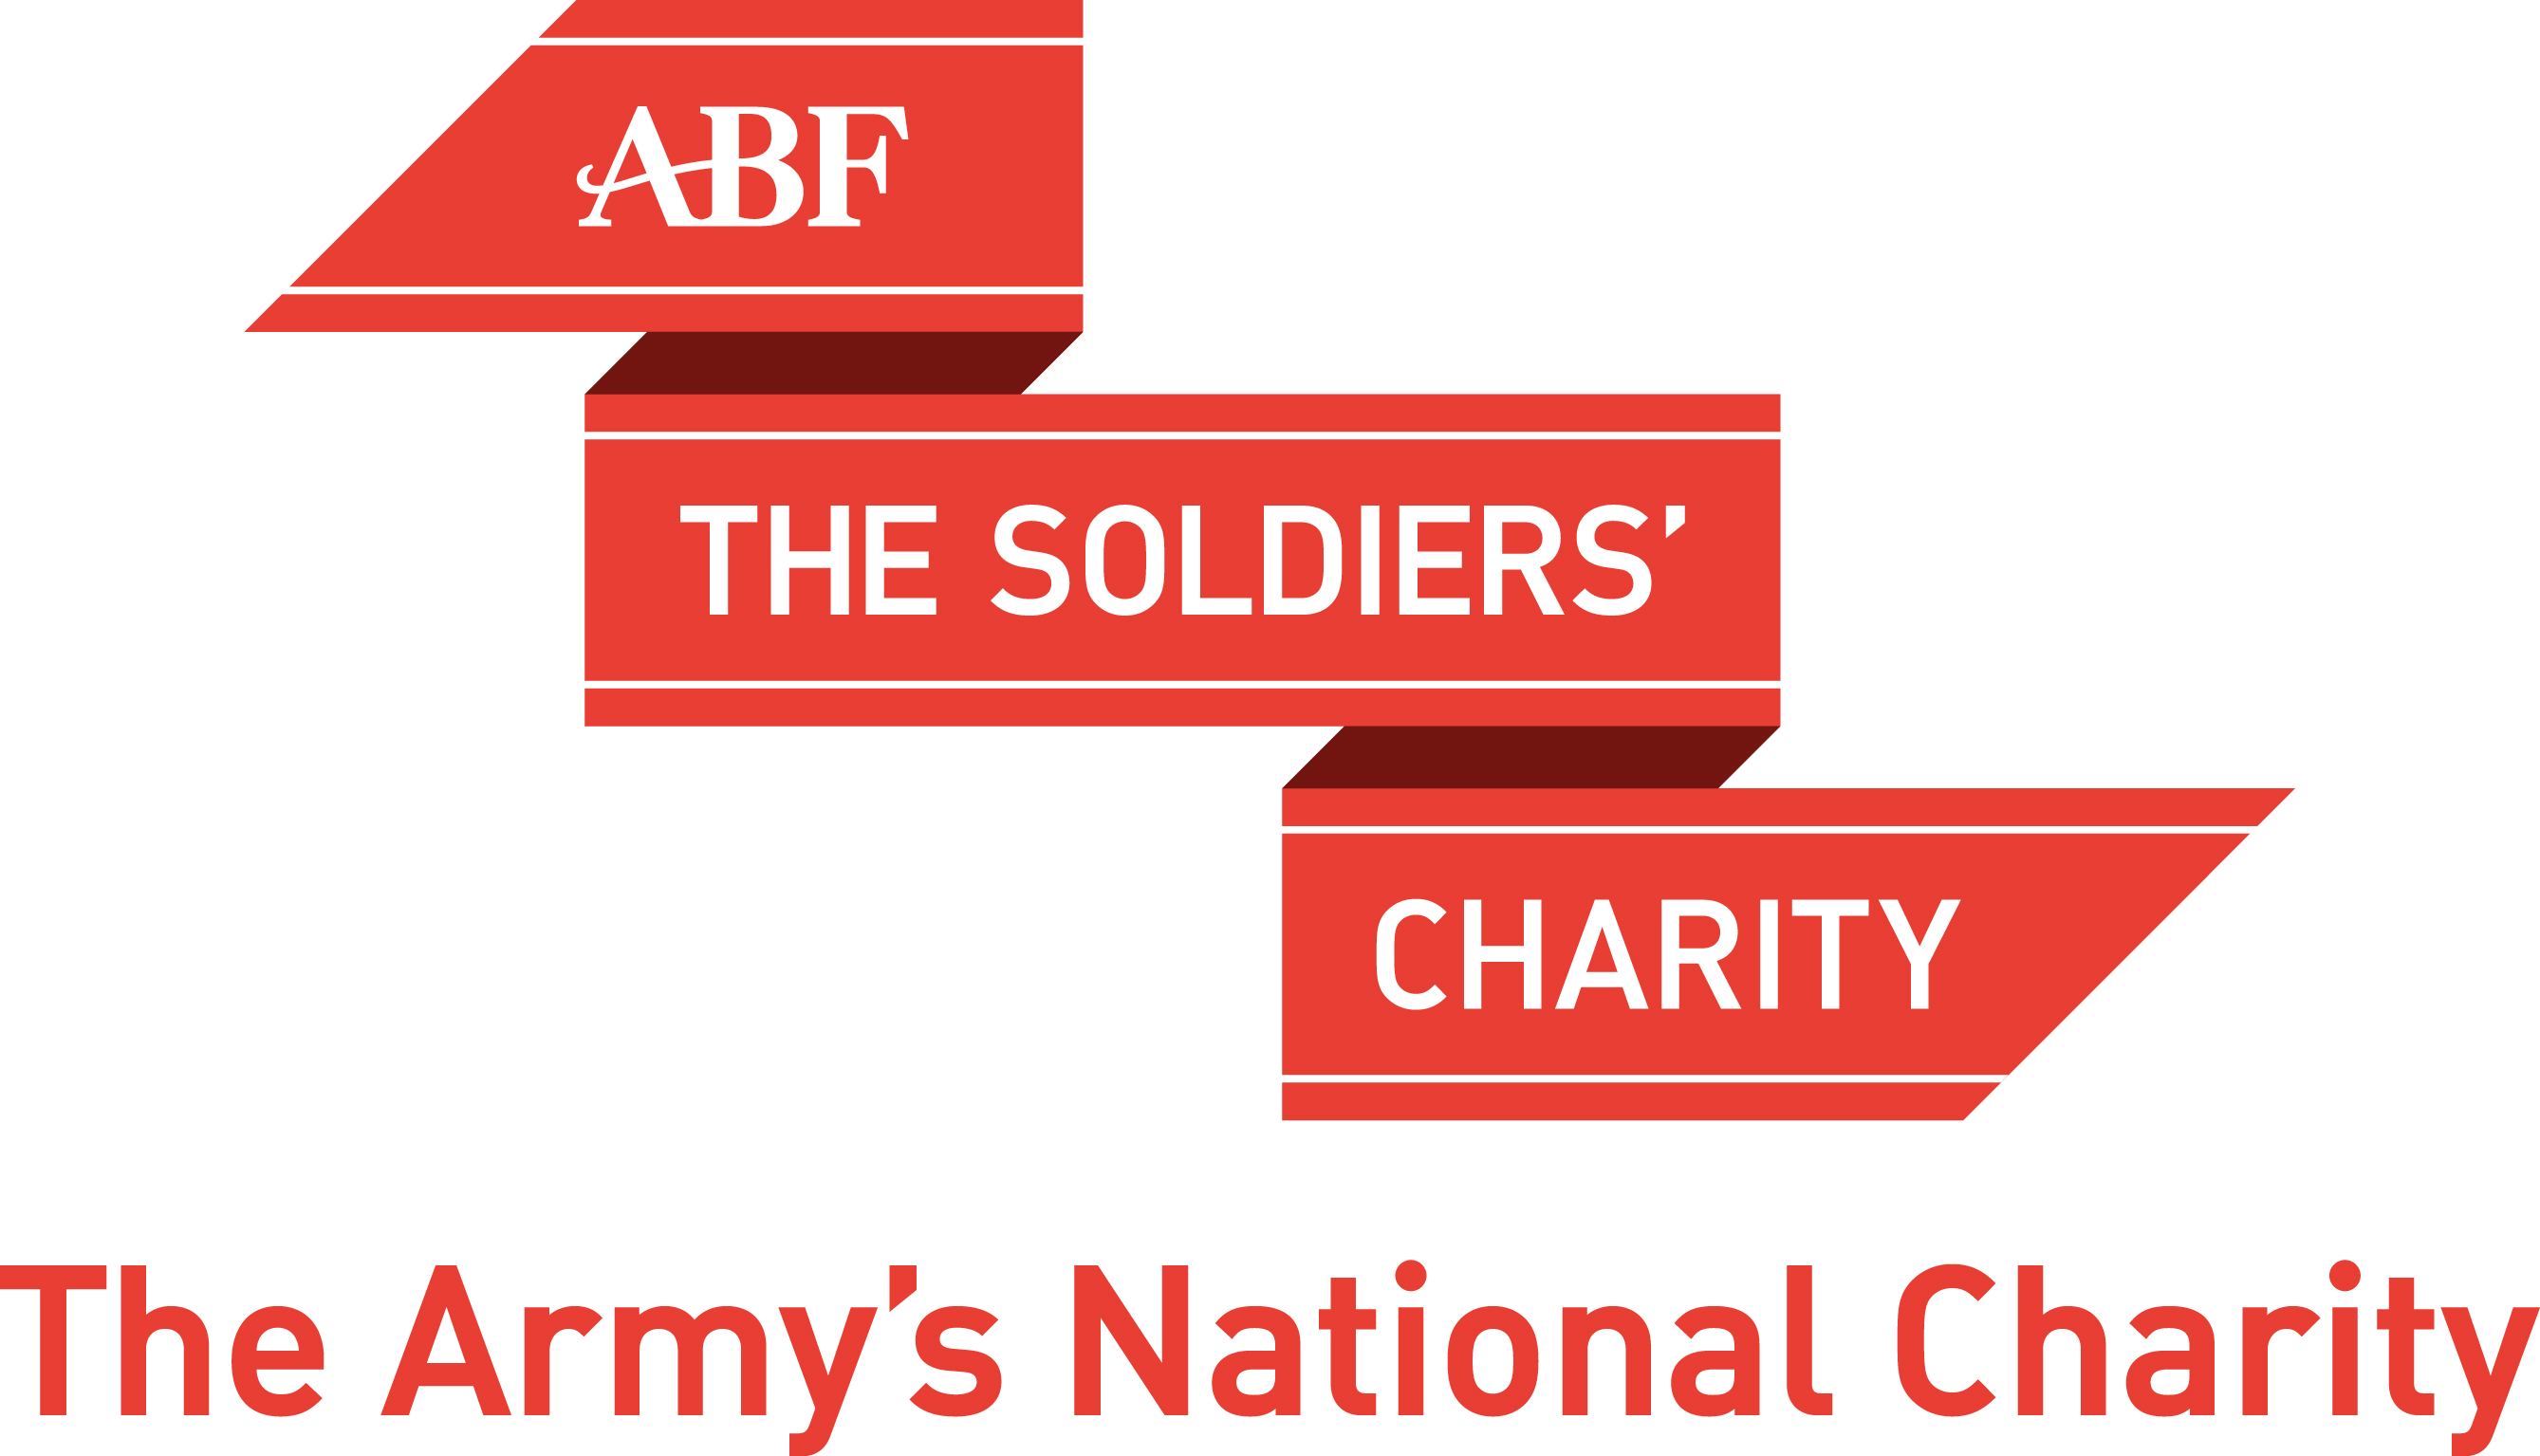 ABF The Soldiers' Charity | The Soldiers' Charity